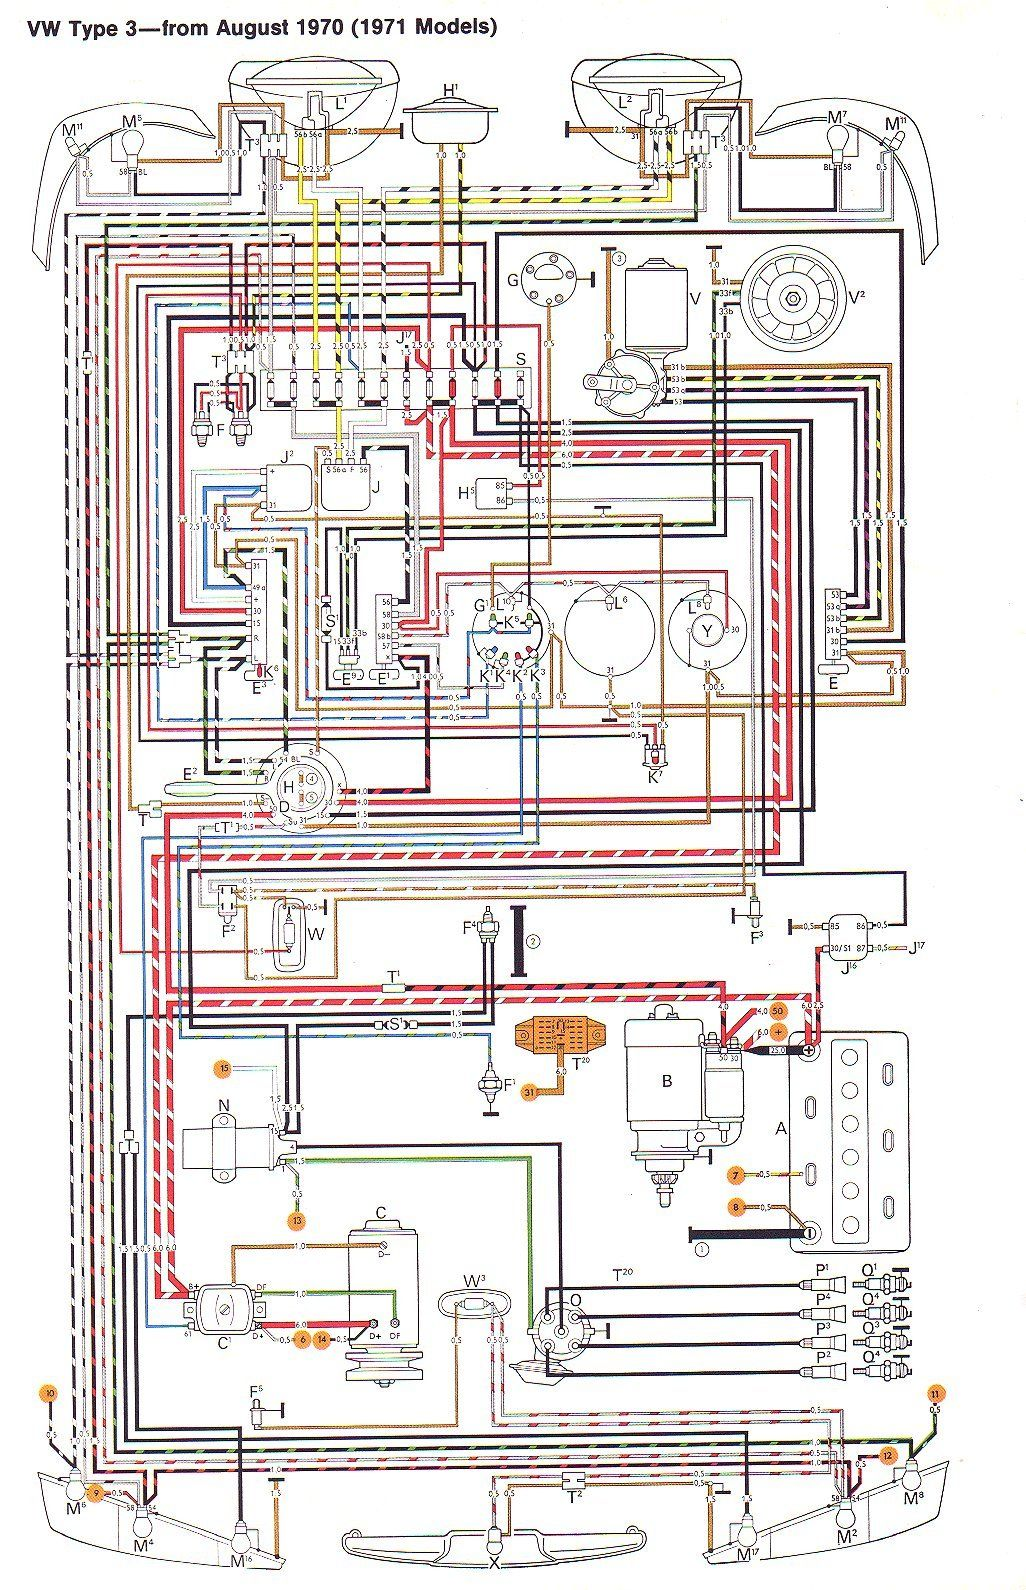 e0db58370f79a63d02d45f00cf63f44a 71 vw t3 wiring diagram ruthie pinterest volkswagen, engine vw engine wiring diagram at aneh.co